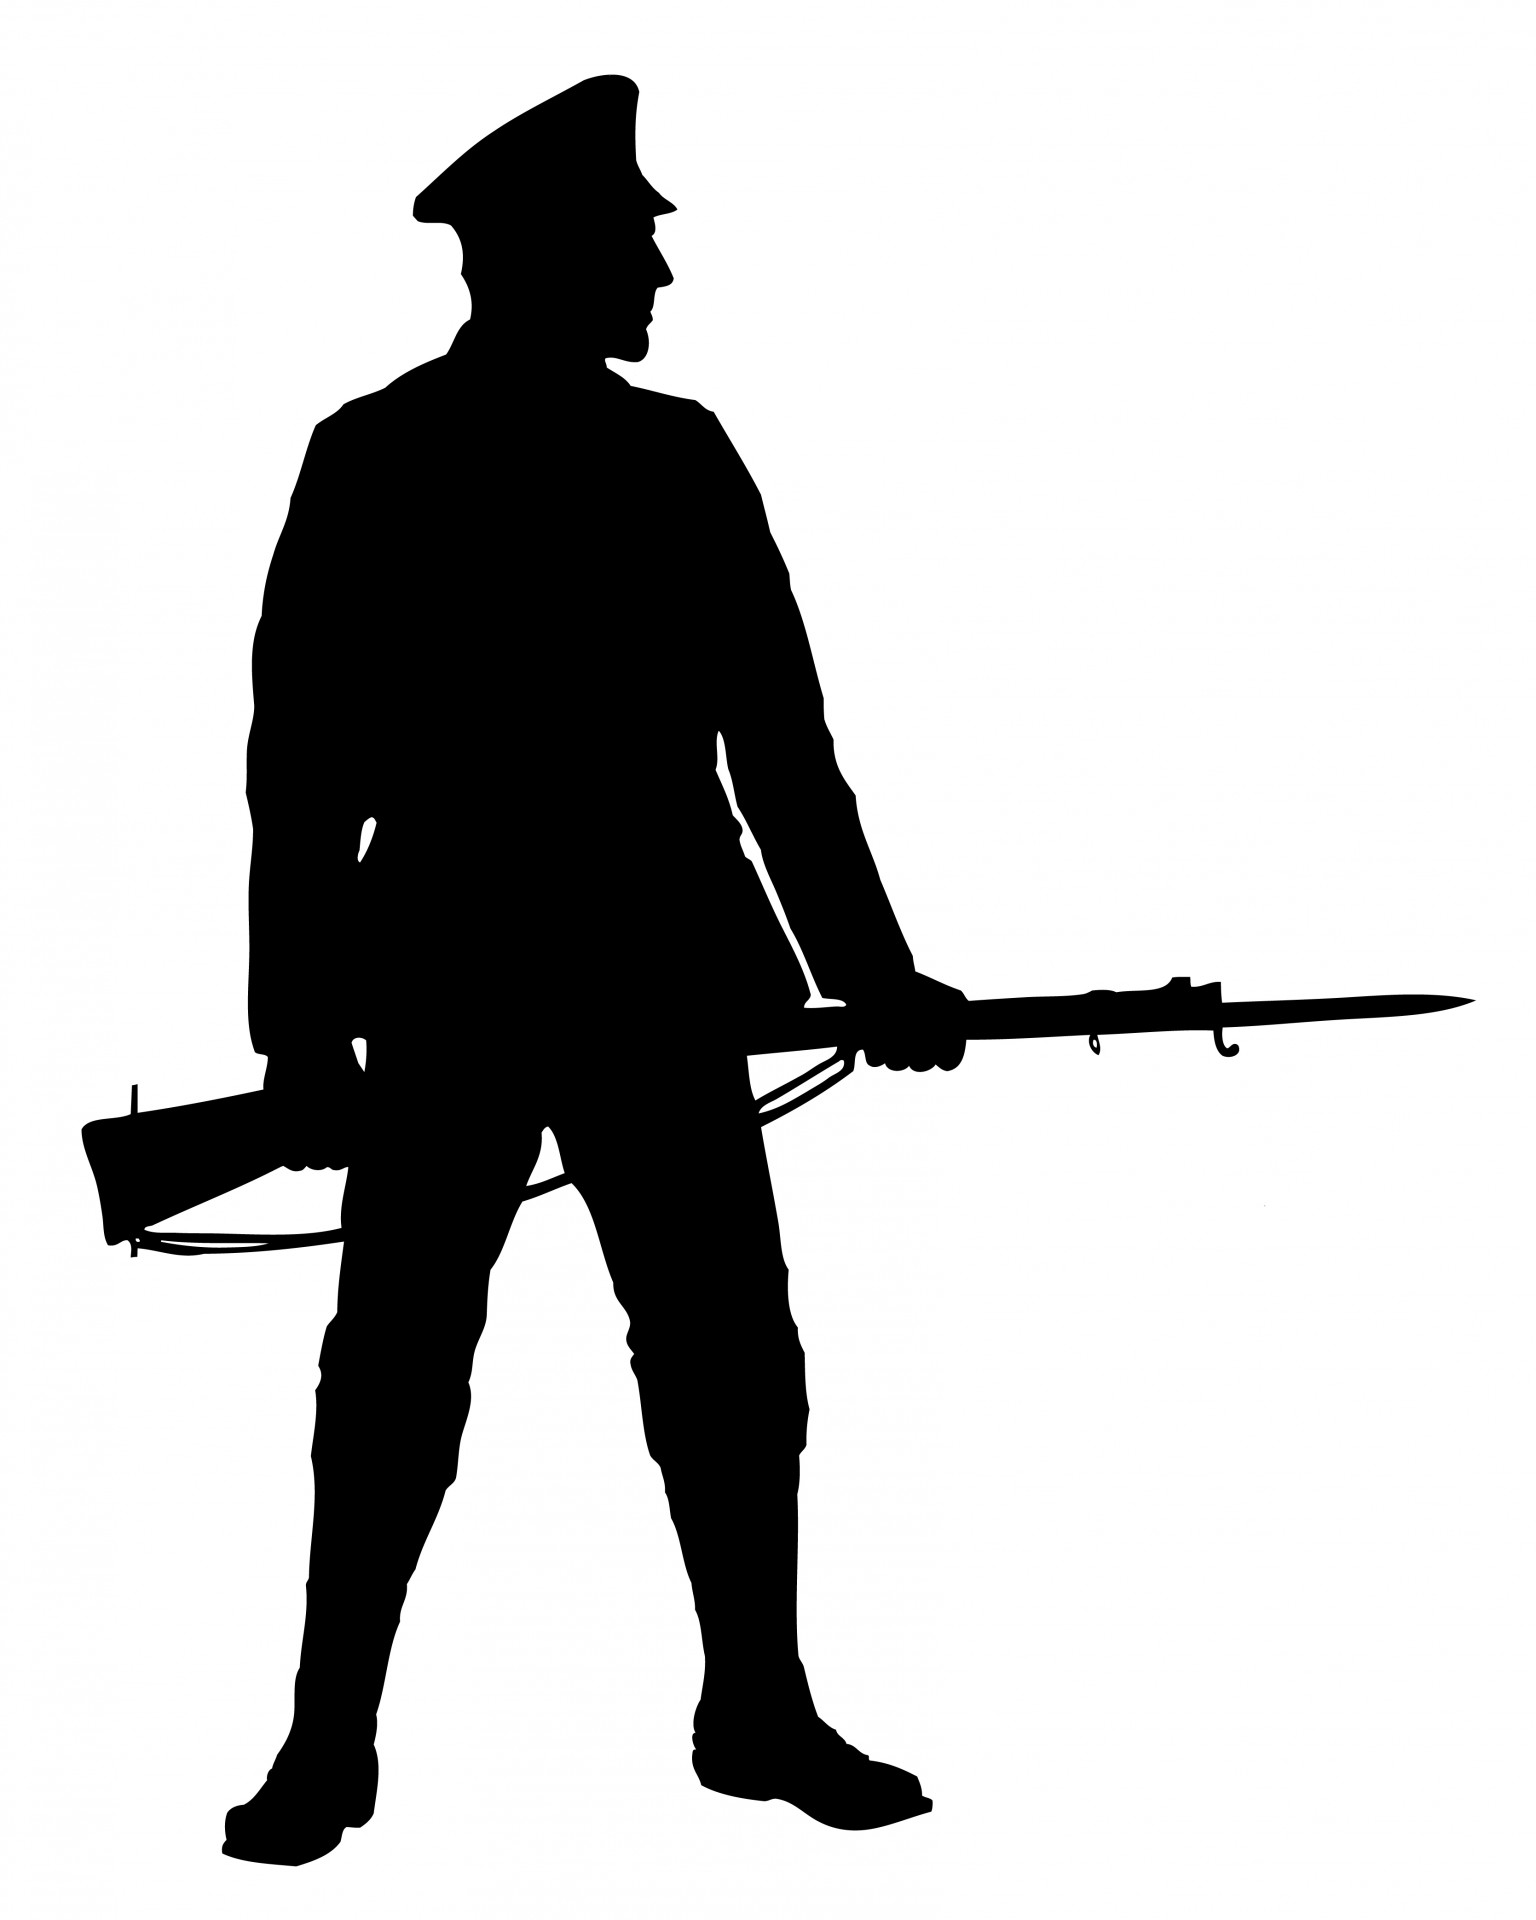 Soldiers clipart sniper rifle Soldiers weapons With collection Clipart